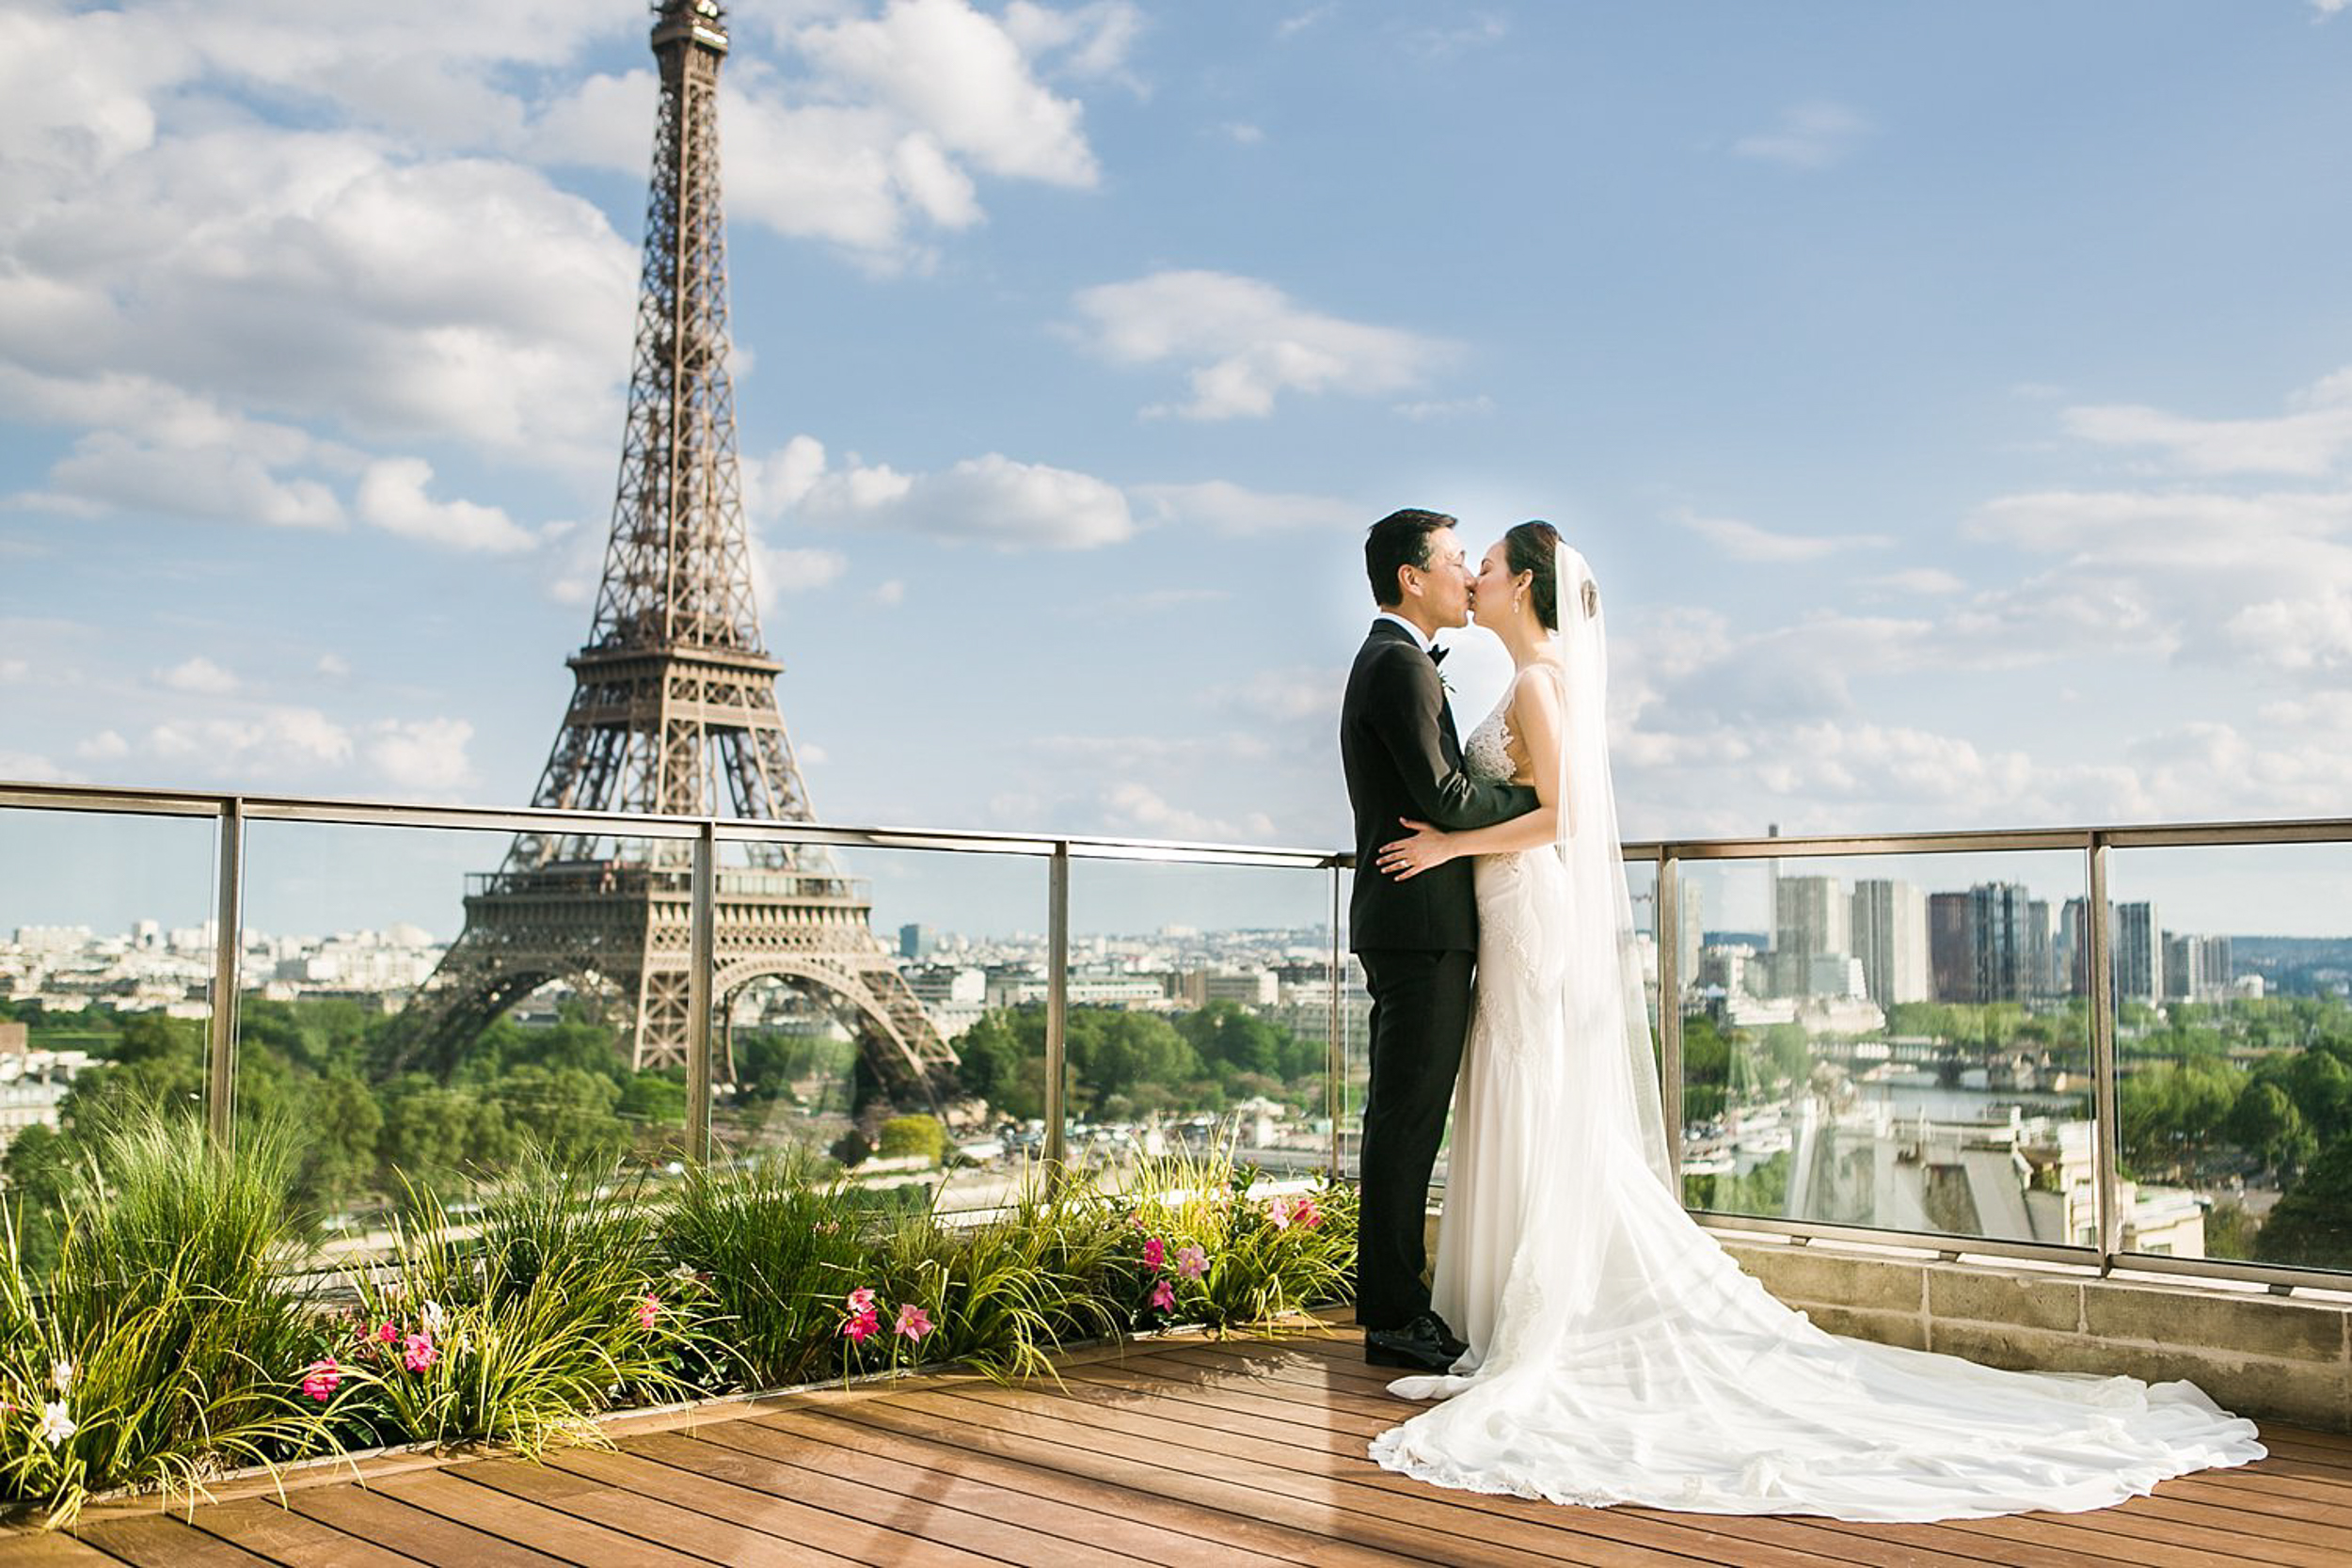 english-speaking-wedding-elopement-photographer-paris-france-307.jpg